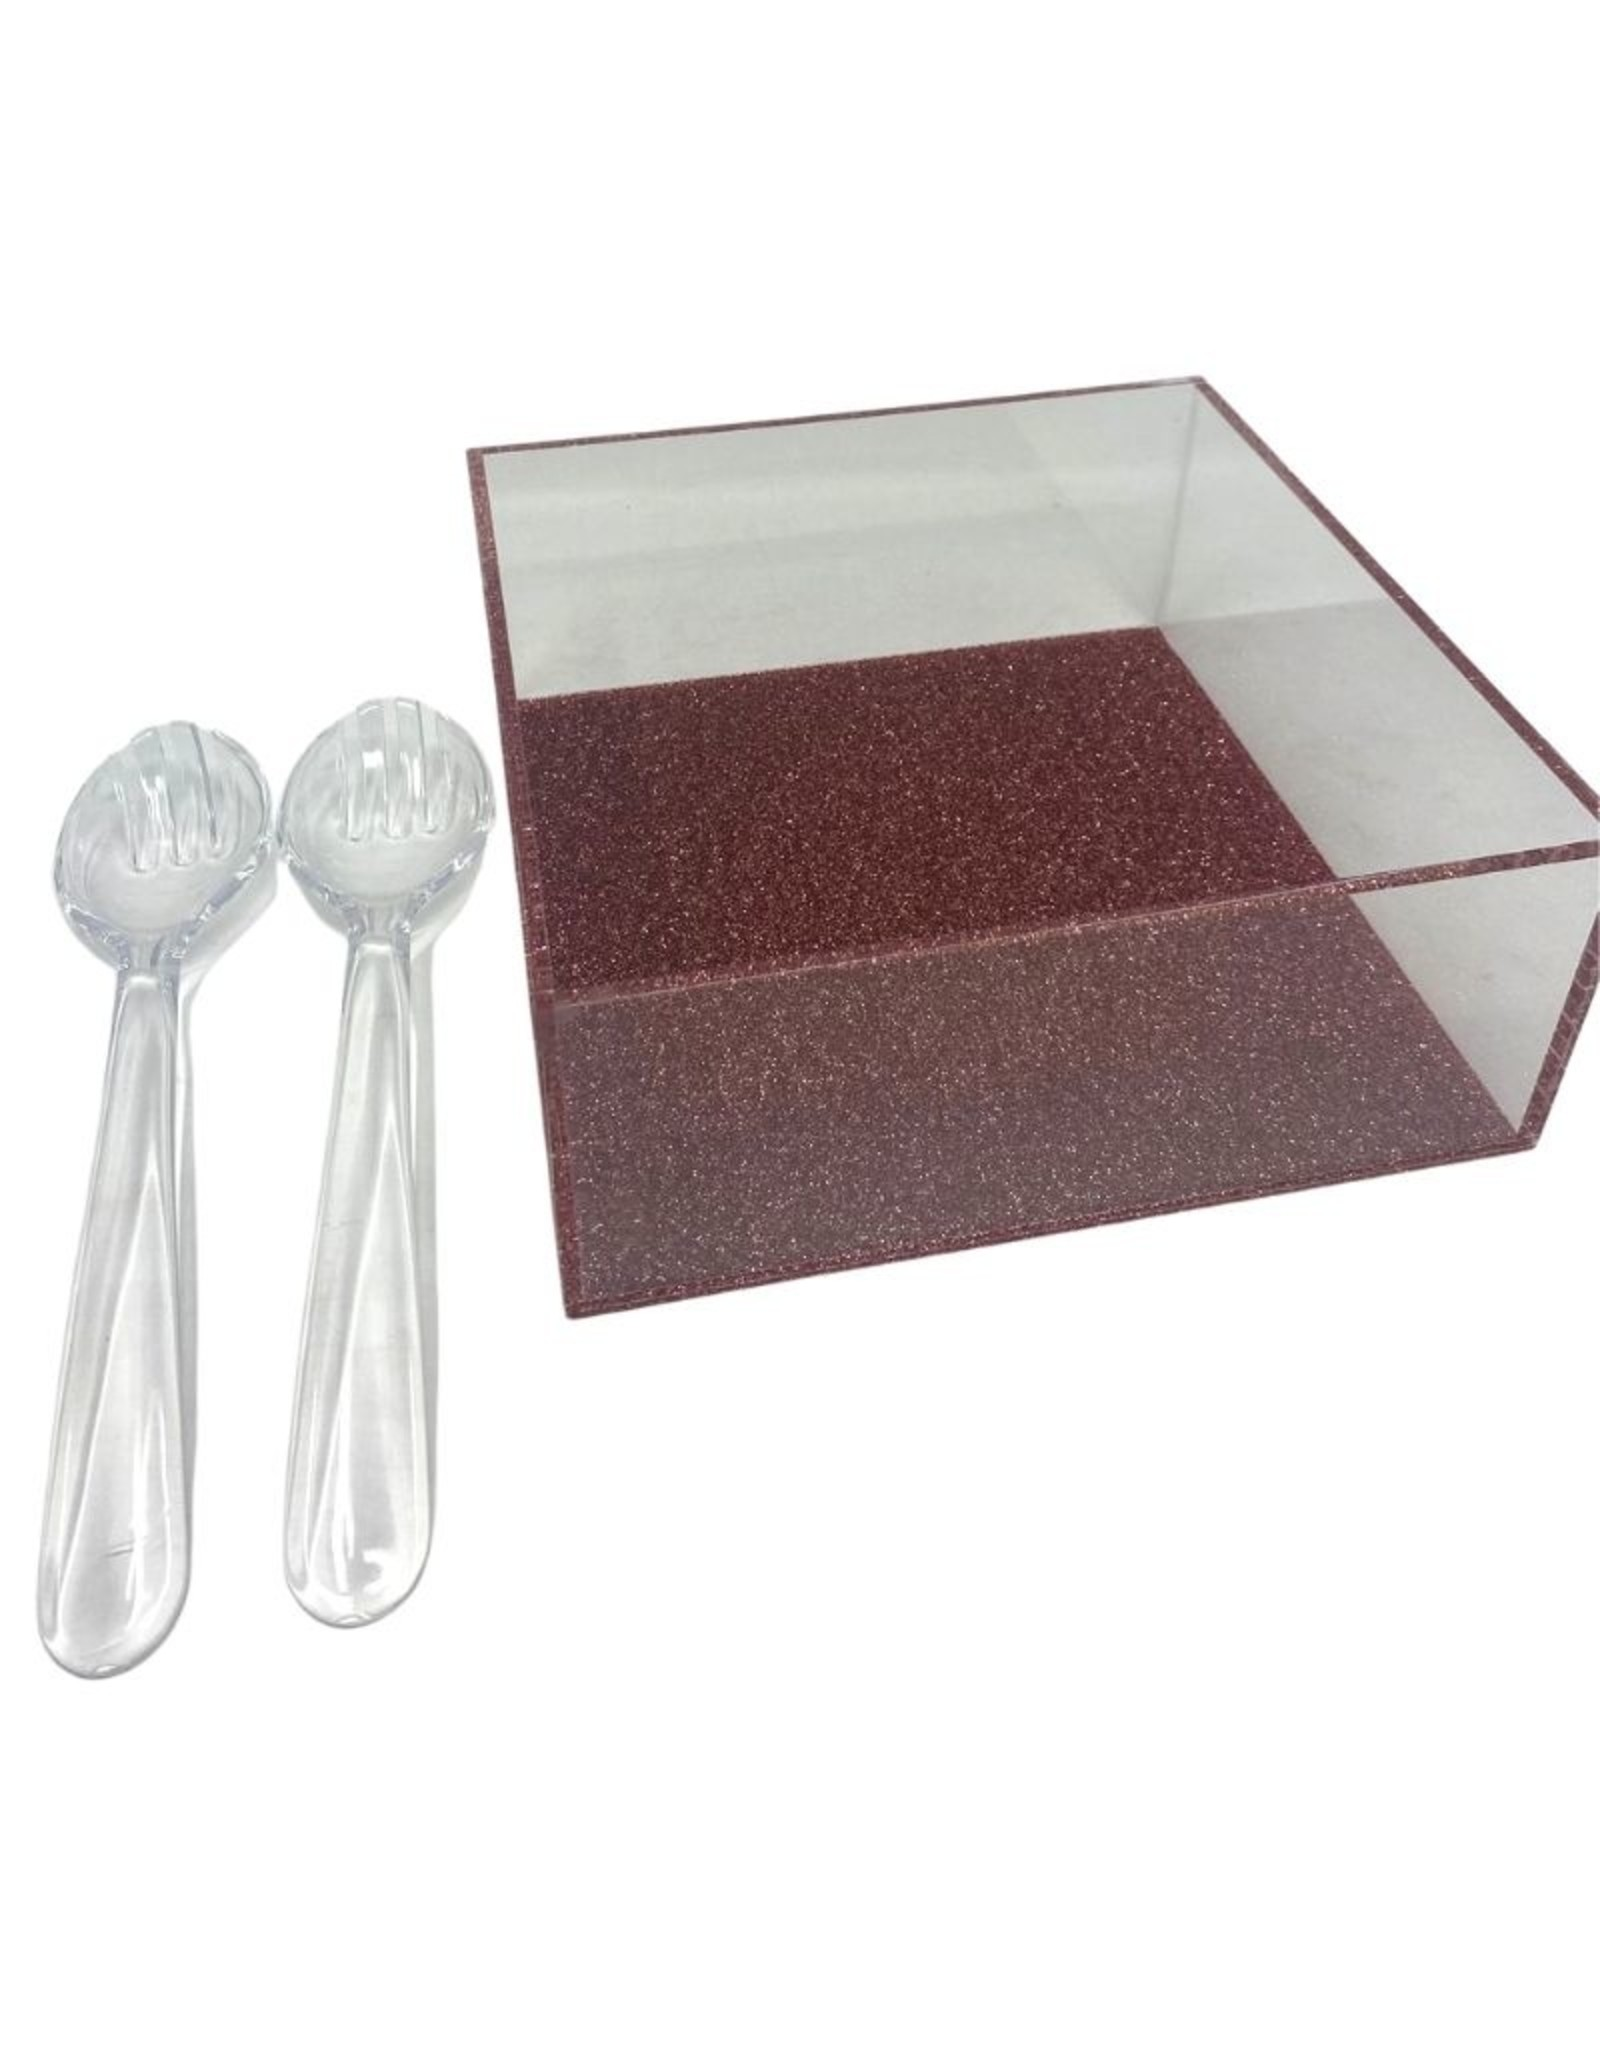 Salad Bowl With Utensils- Pink Glitter